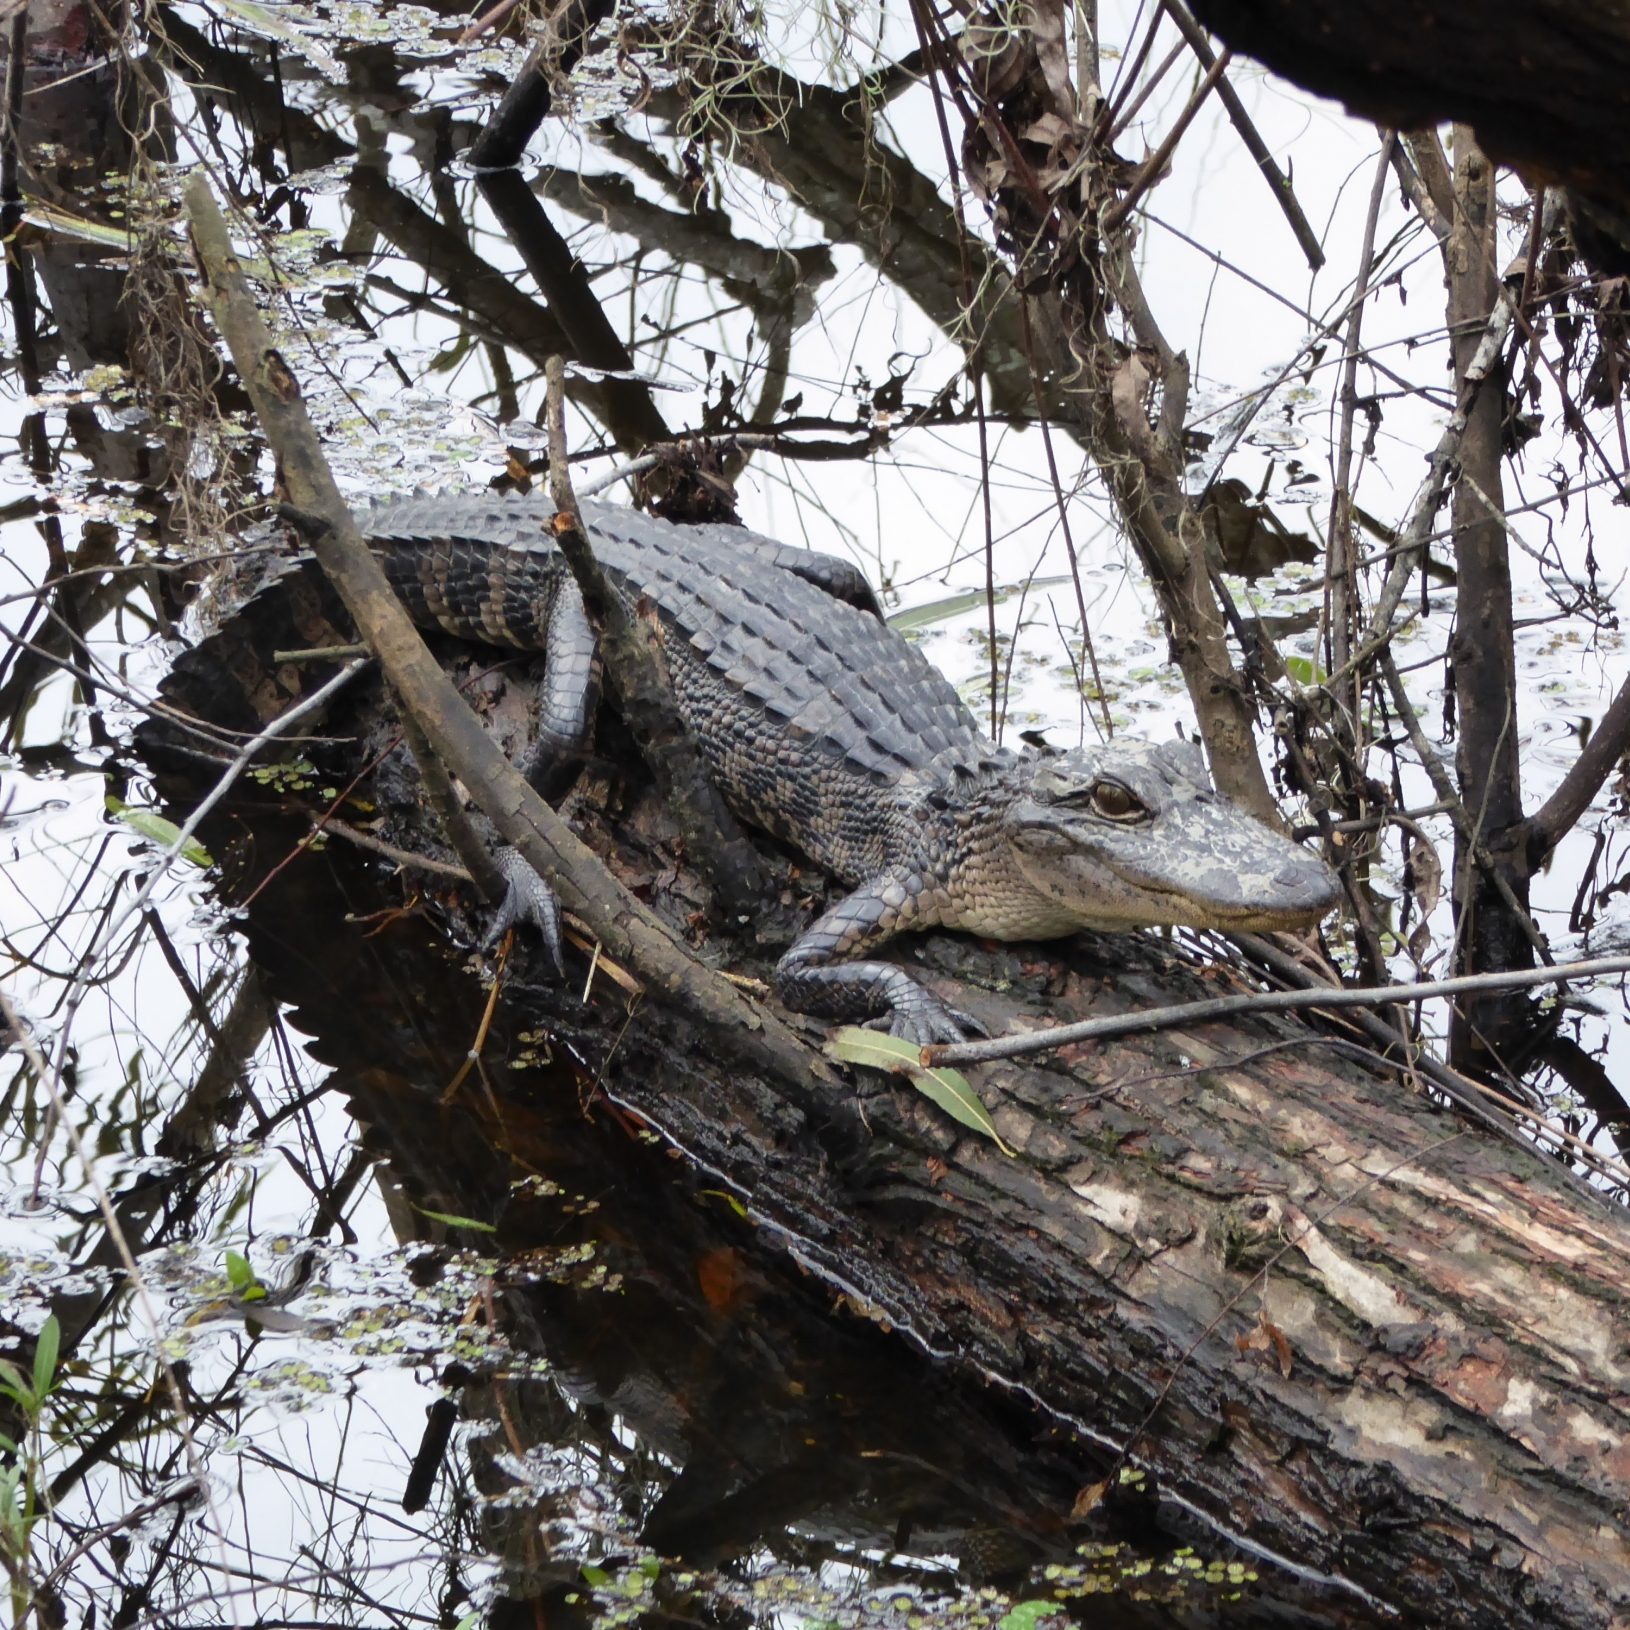 Aligator on log in swamp at the Barataria Preserve - part of the Jean Lafitte NHP